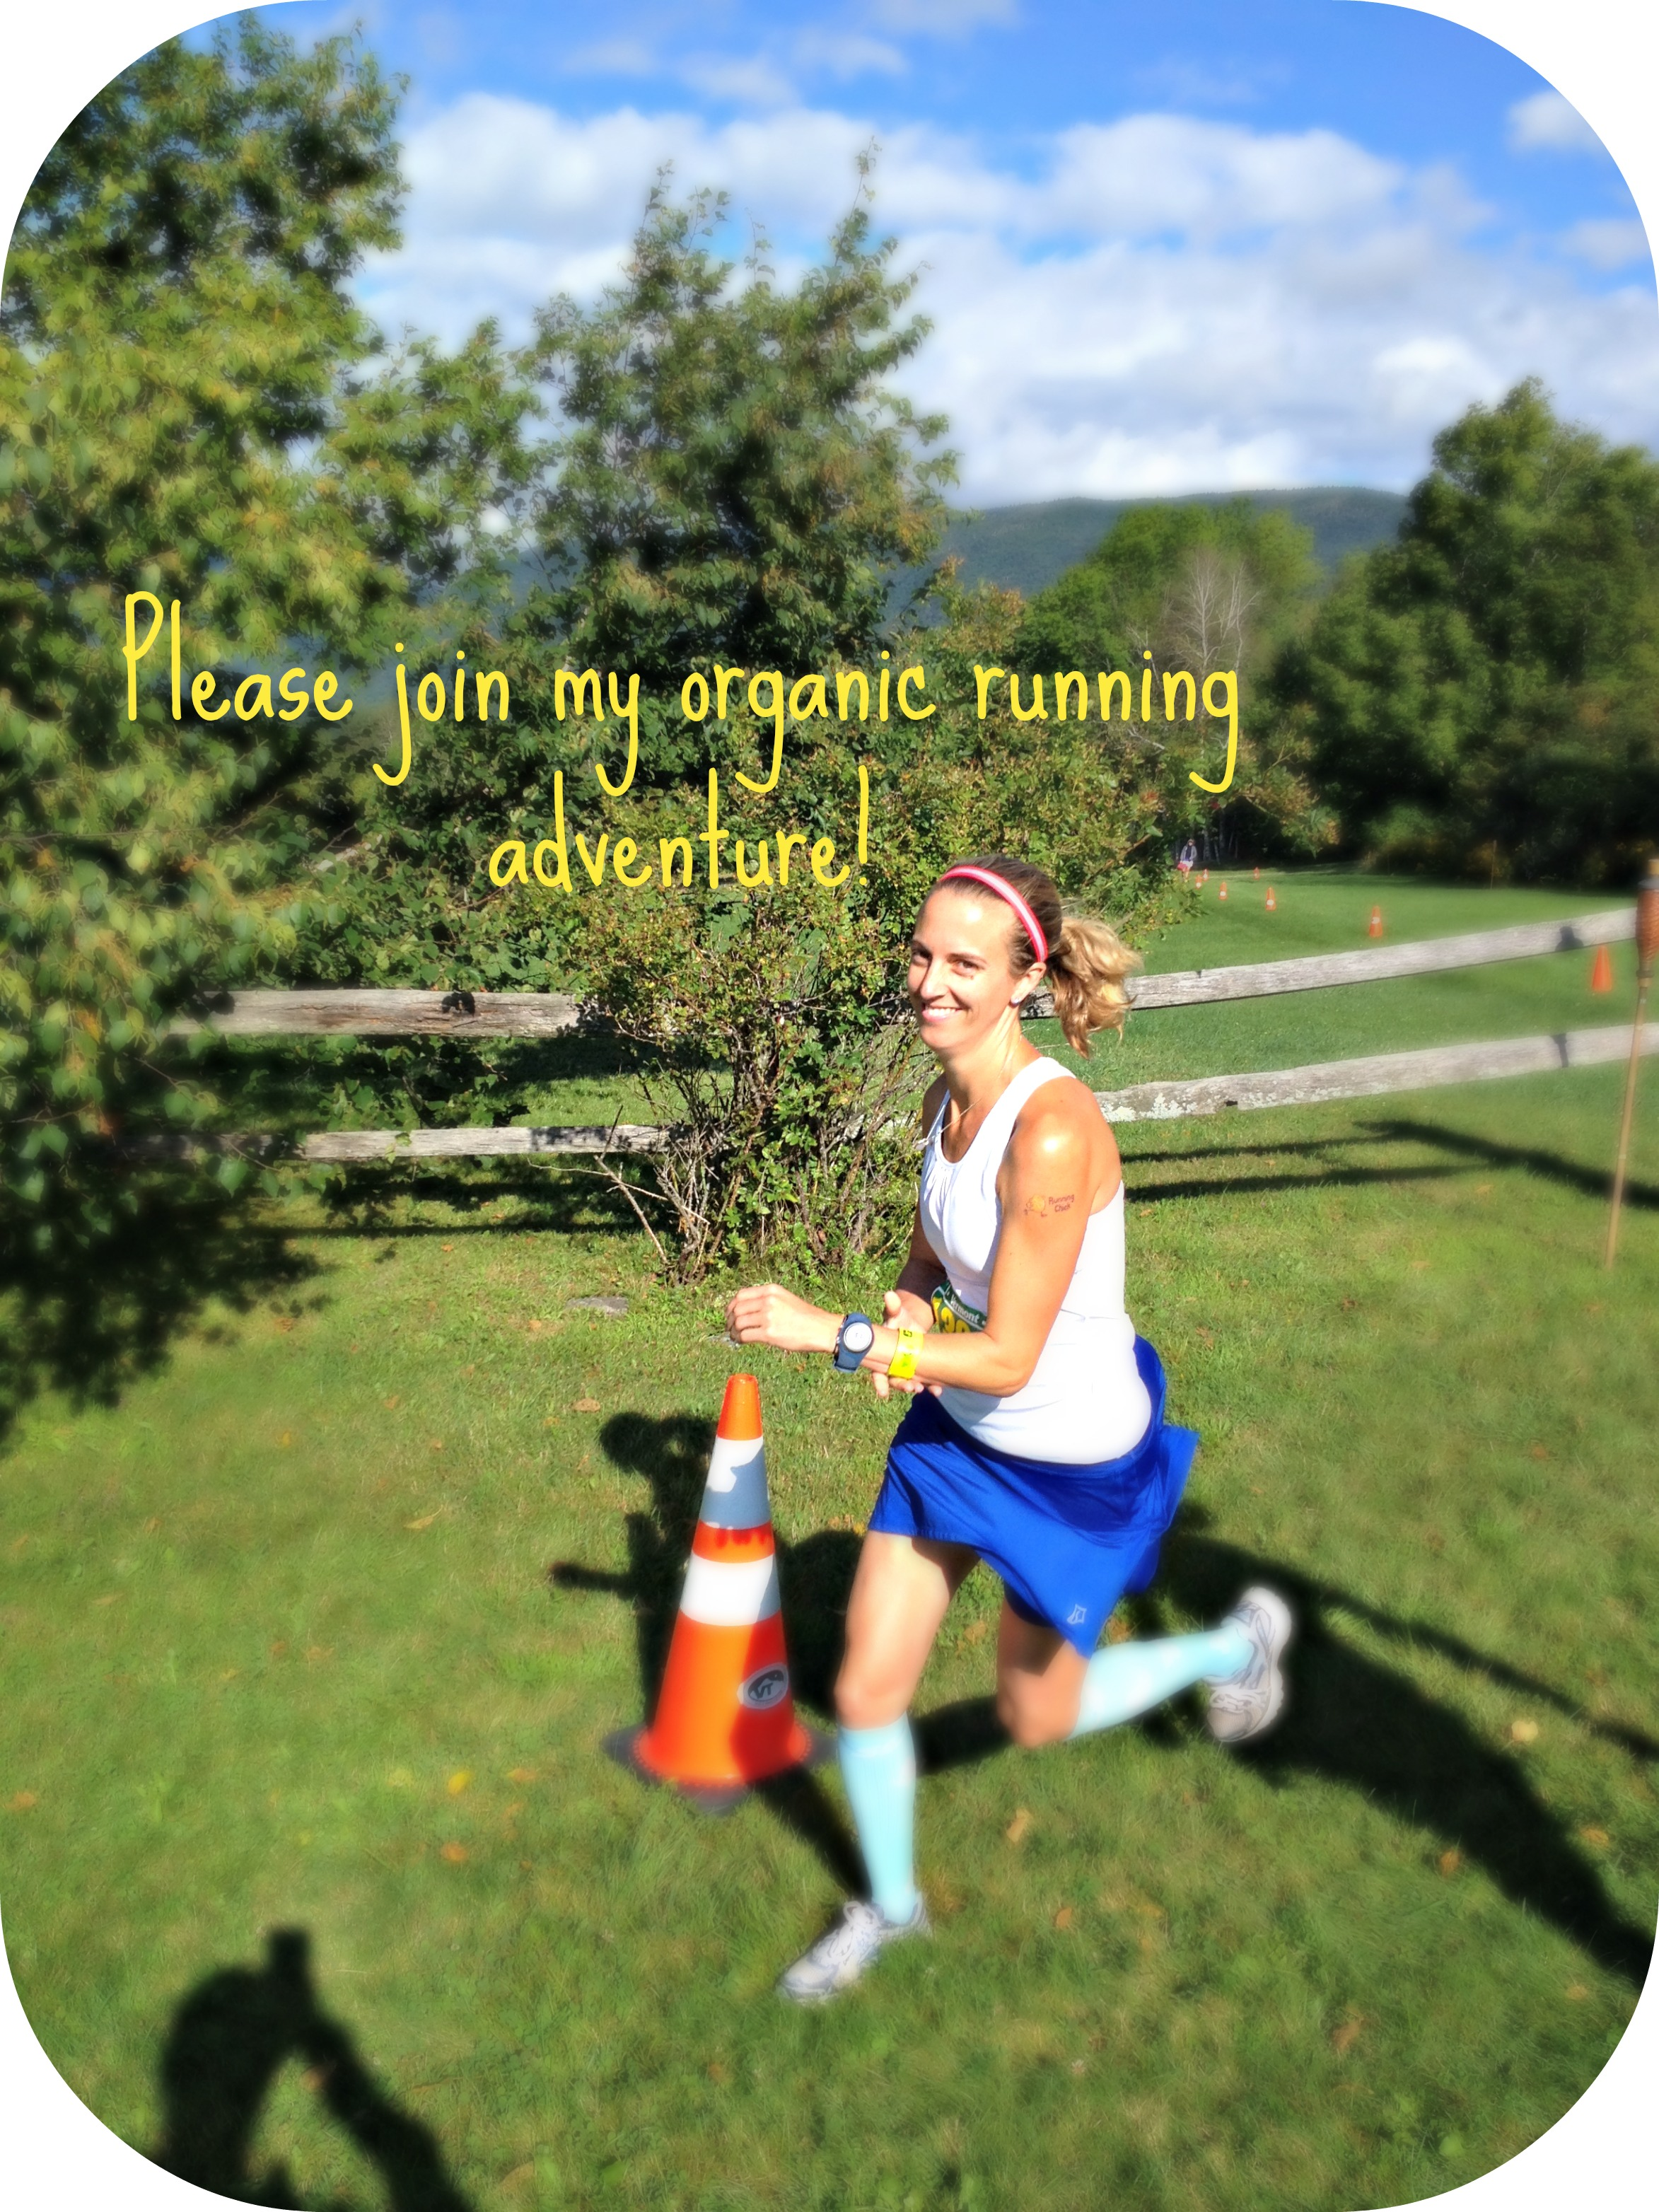 Organic Runner Mom-Boston Marathoner, Trail Runner, Mountain Runner